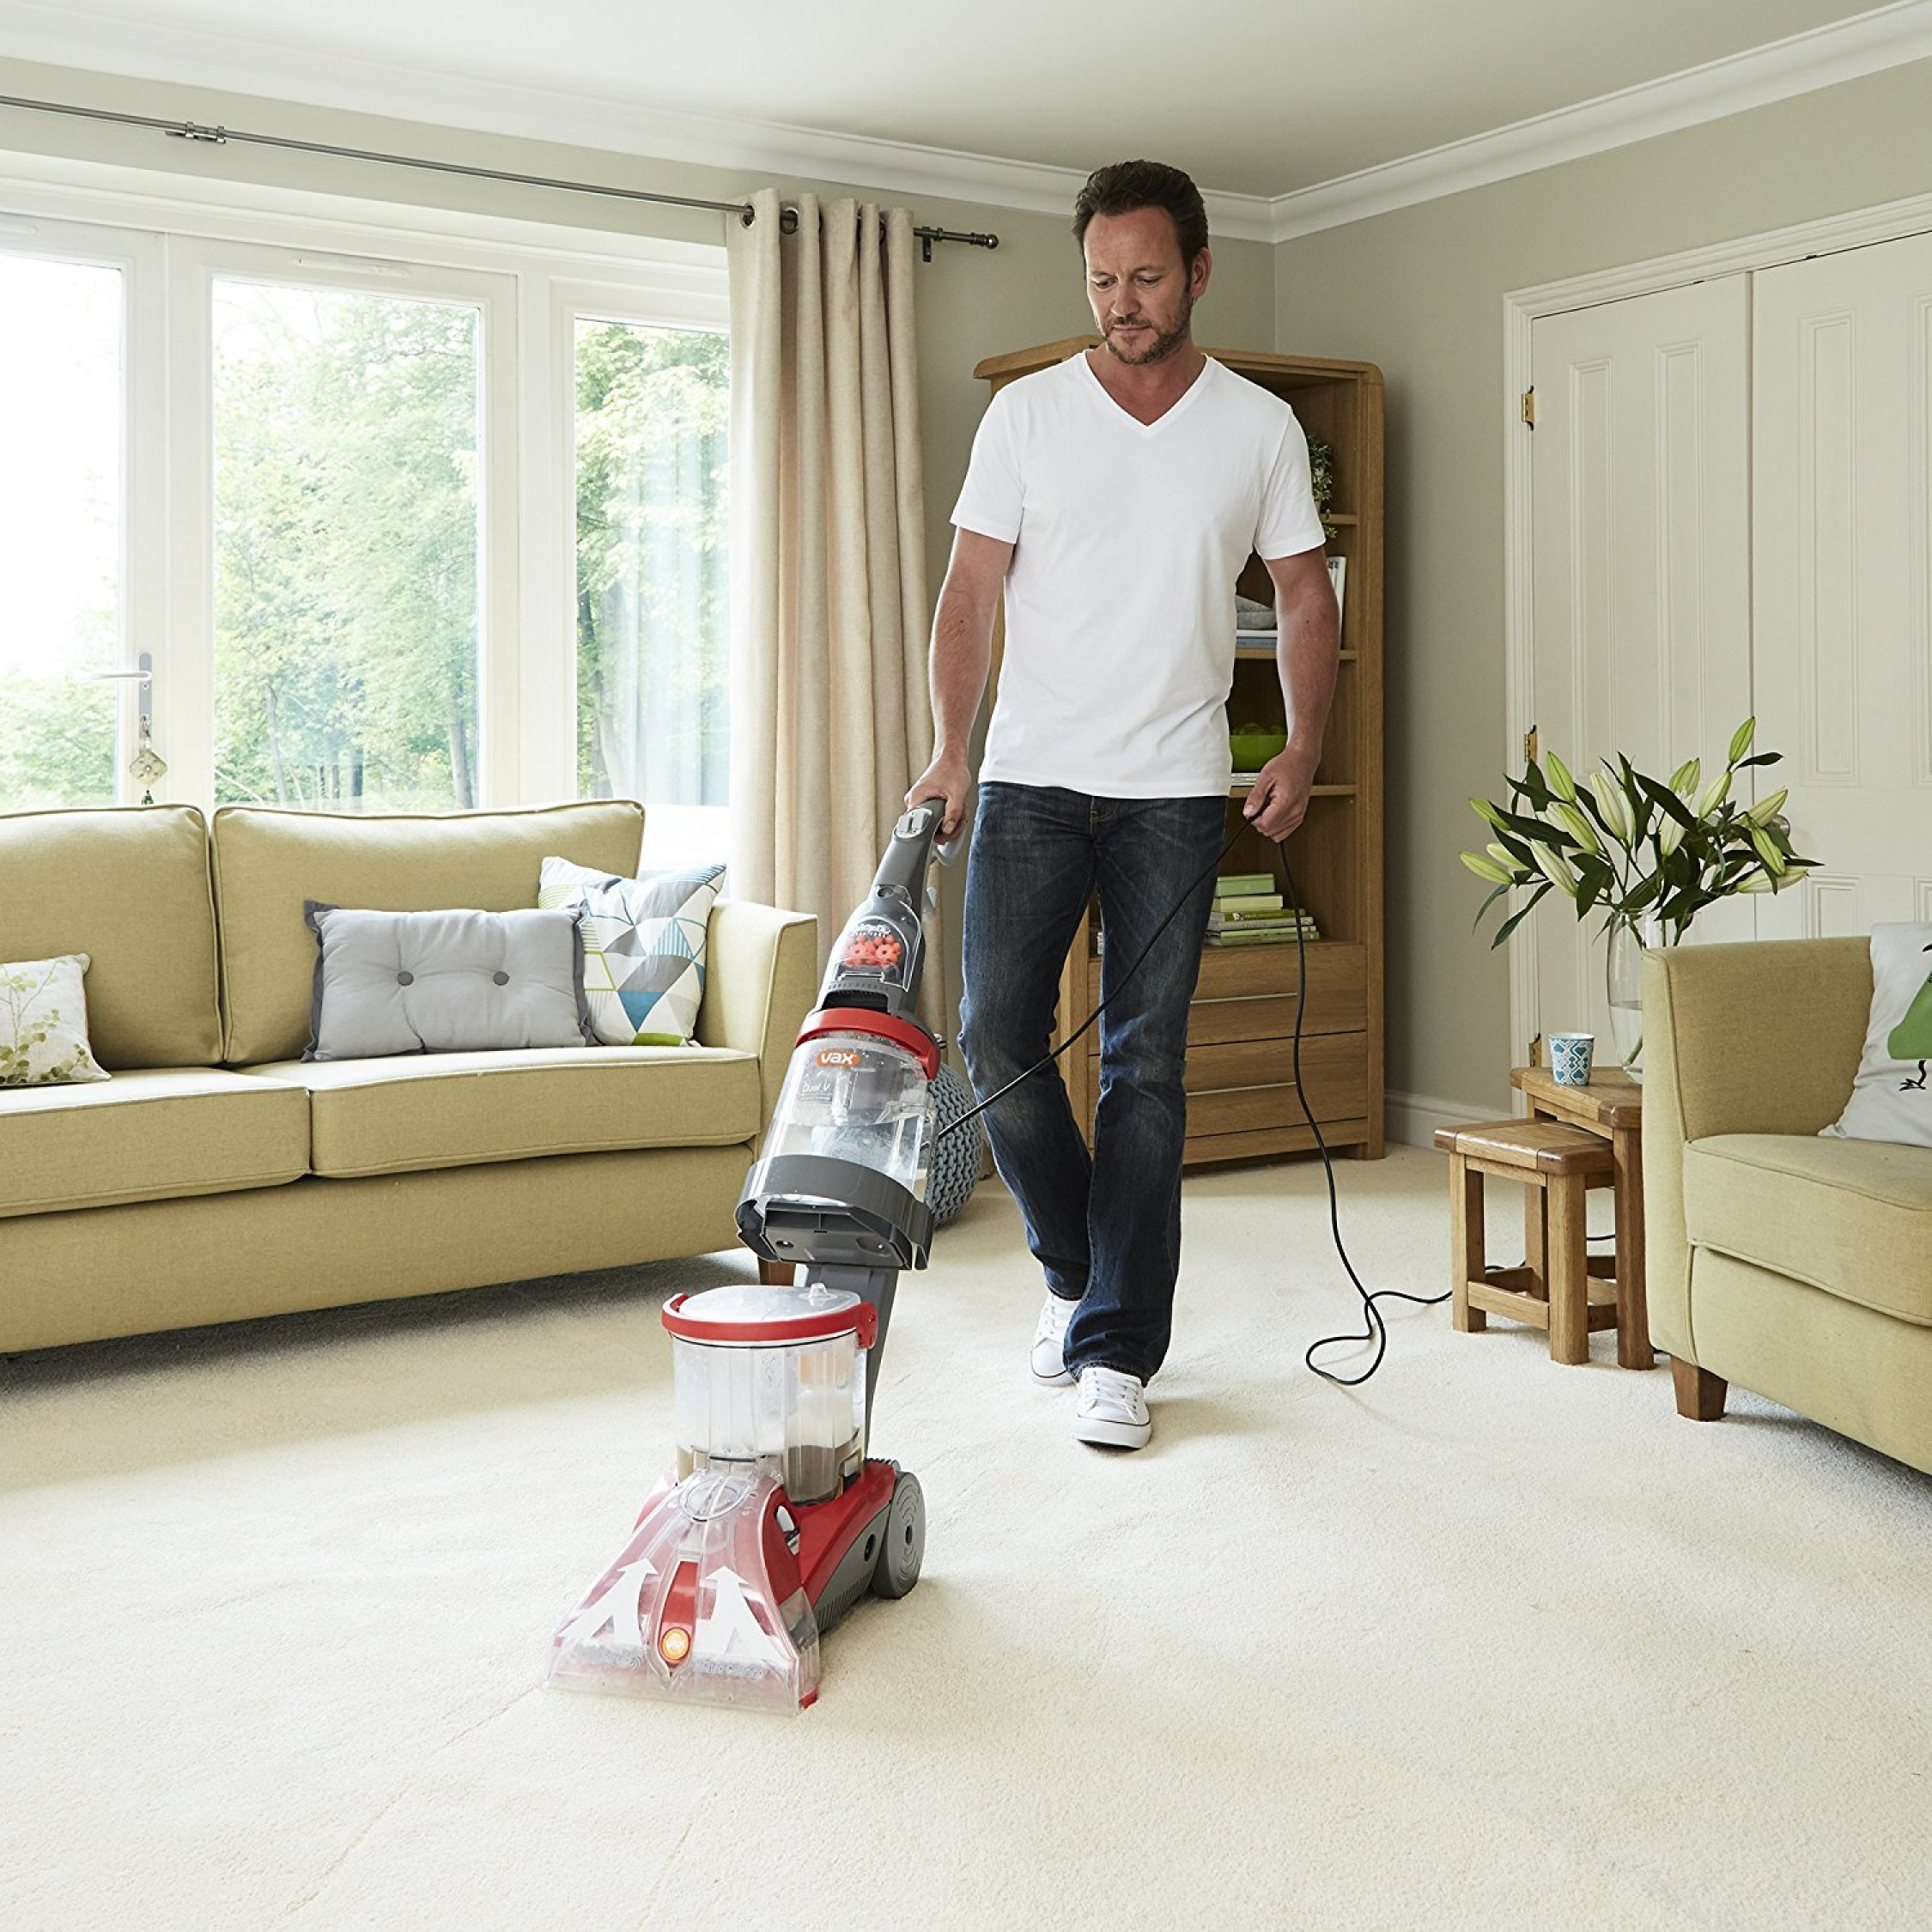 Vax Dual V Upright Carpet And Upholstery Washer Cleaner